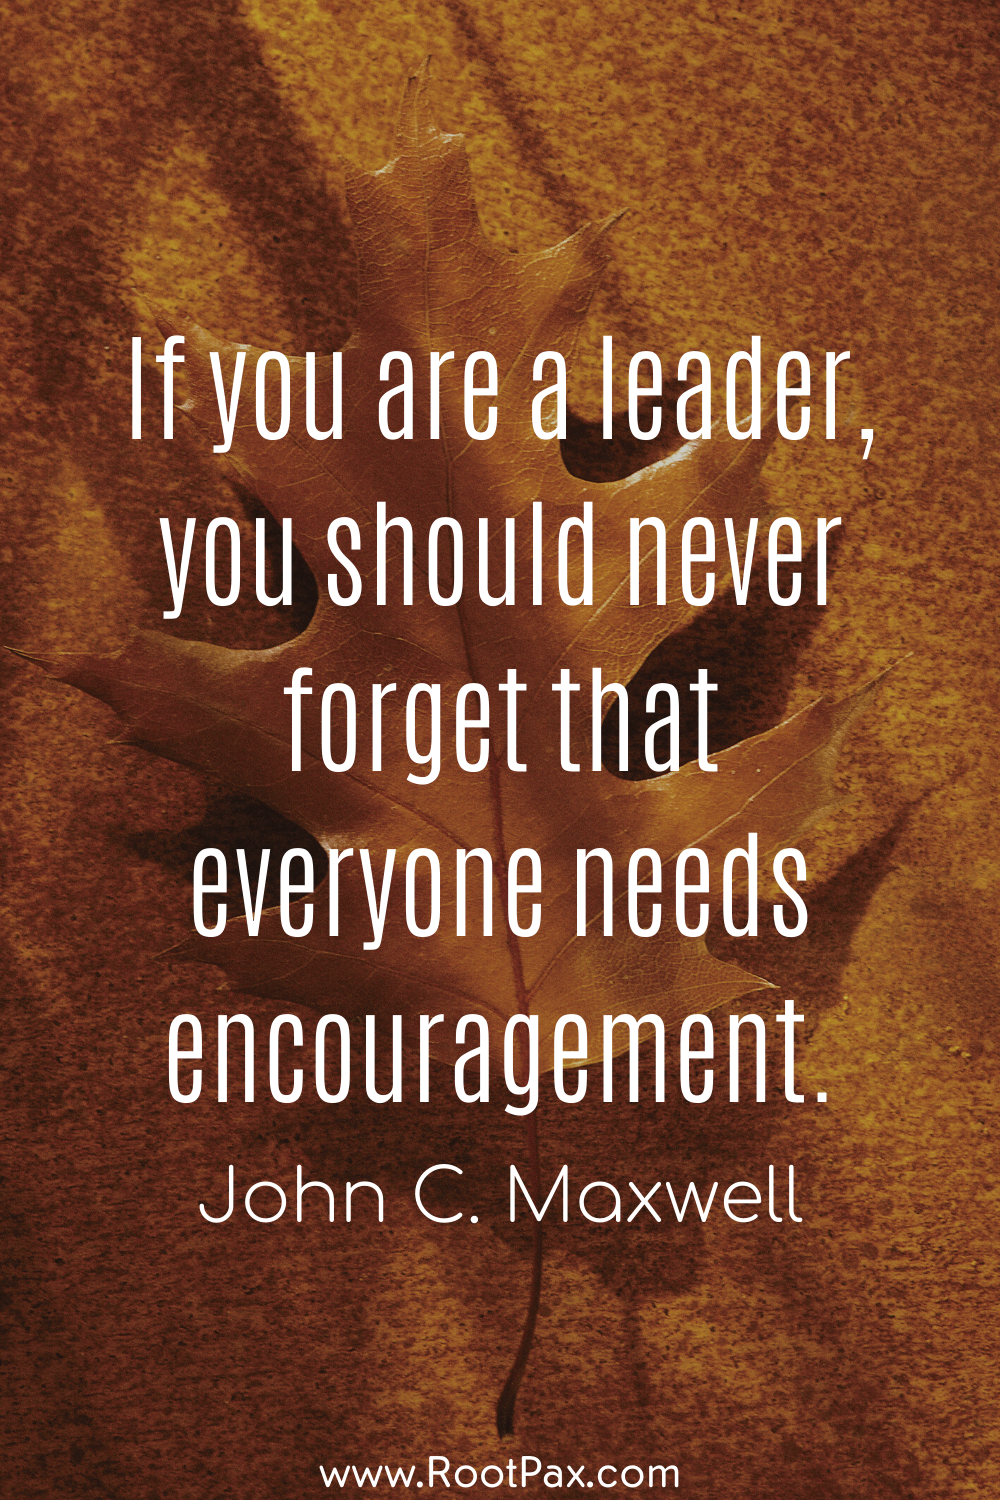 Leadership quote!